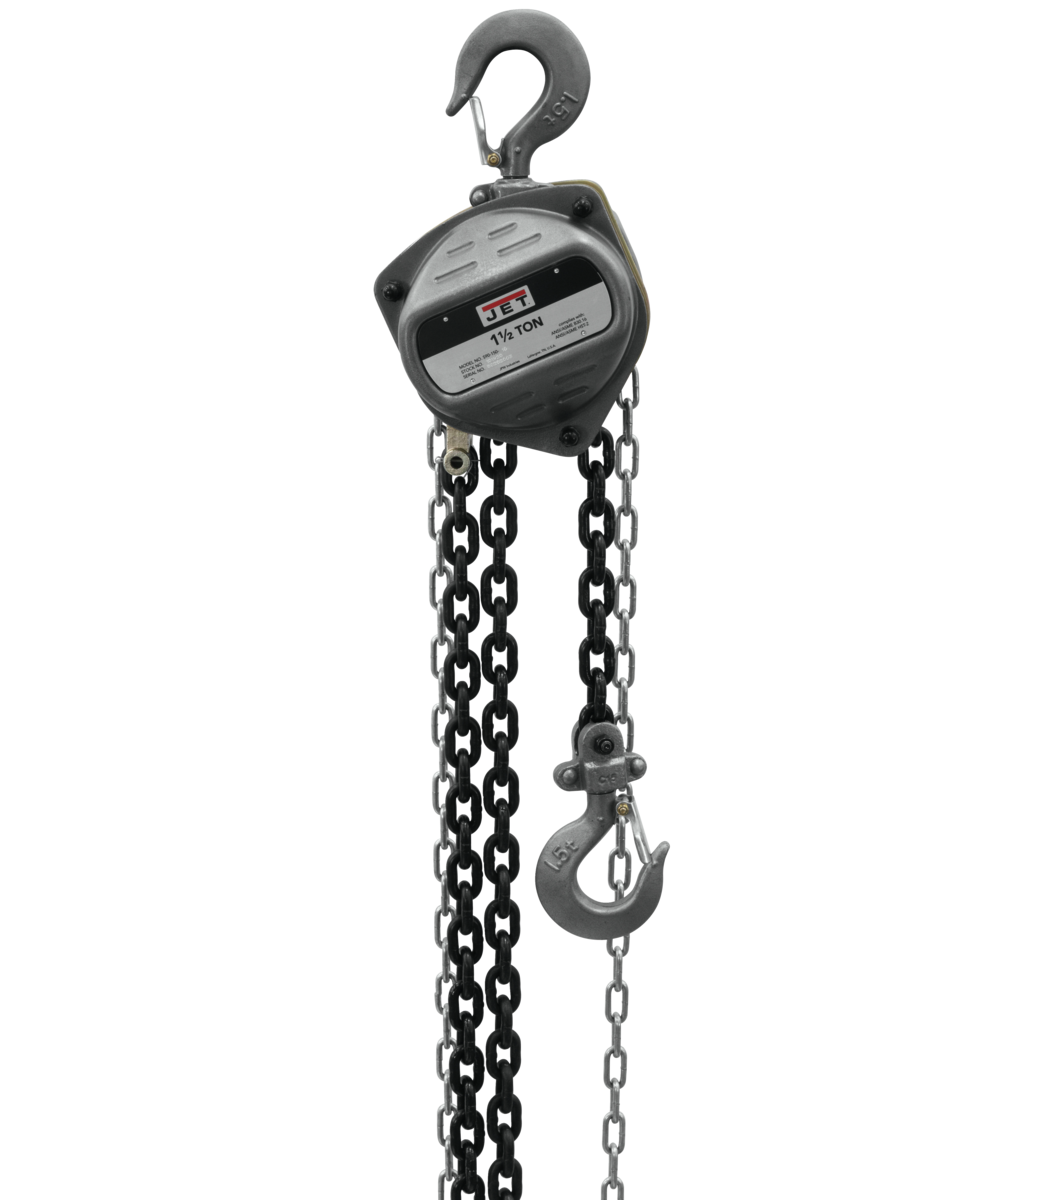 S90-150-20, 1-1/2-Ton Hand Chain Hoist With 20' Lift